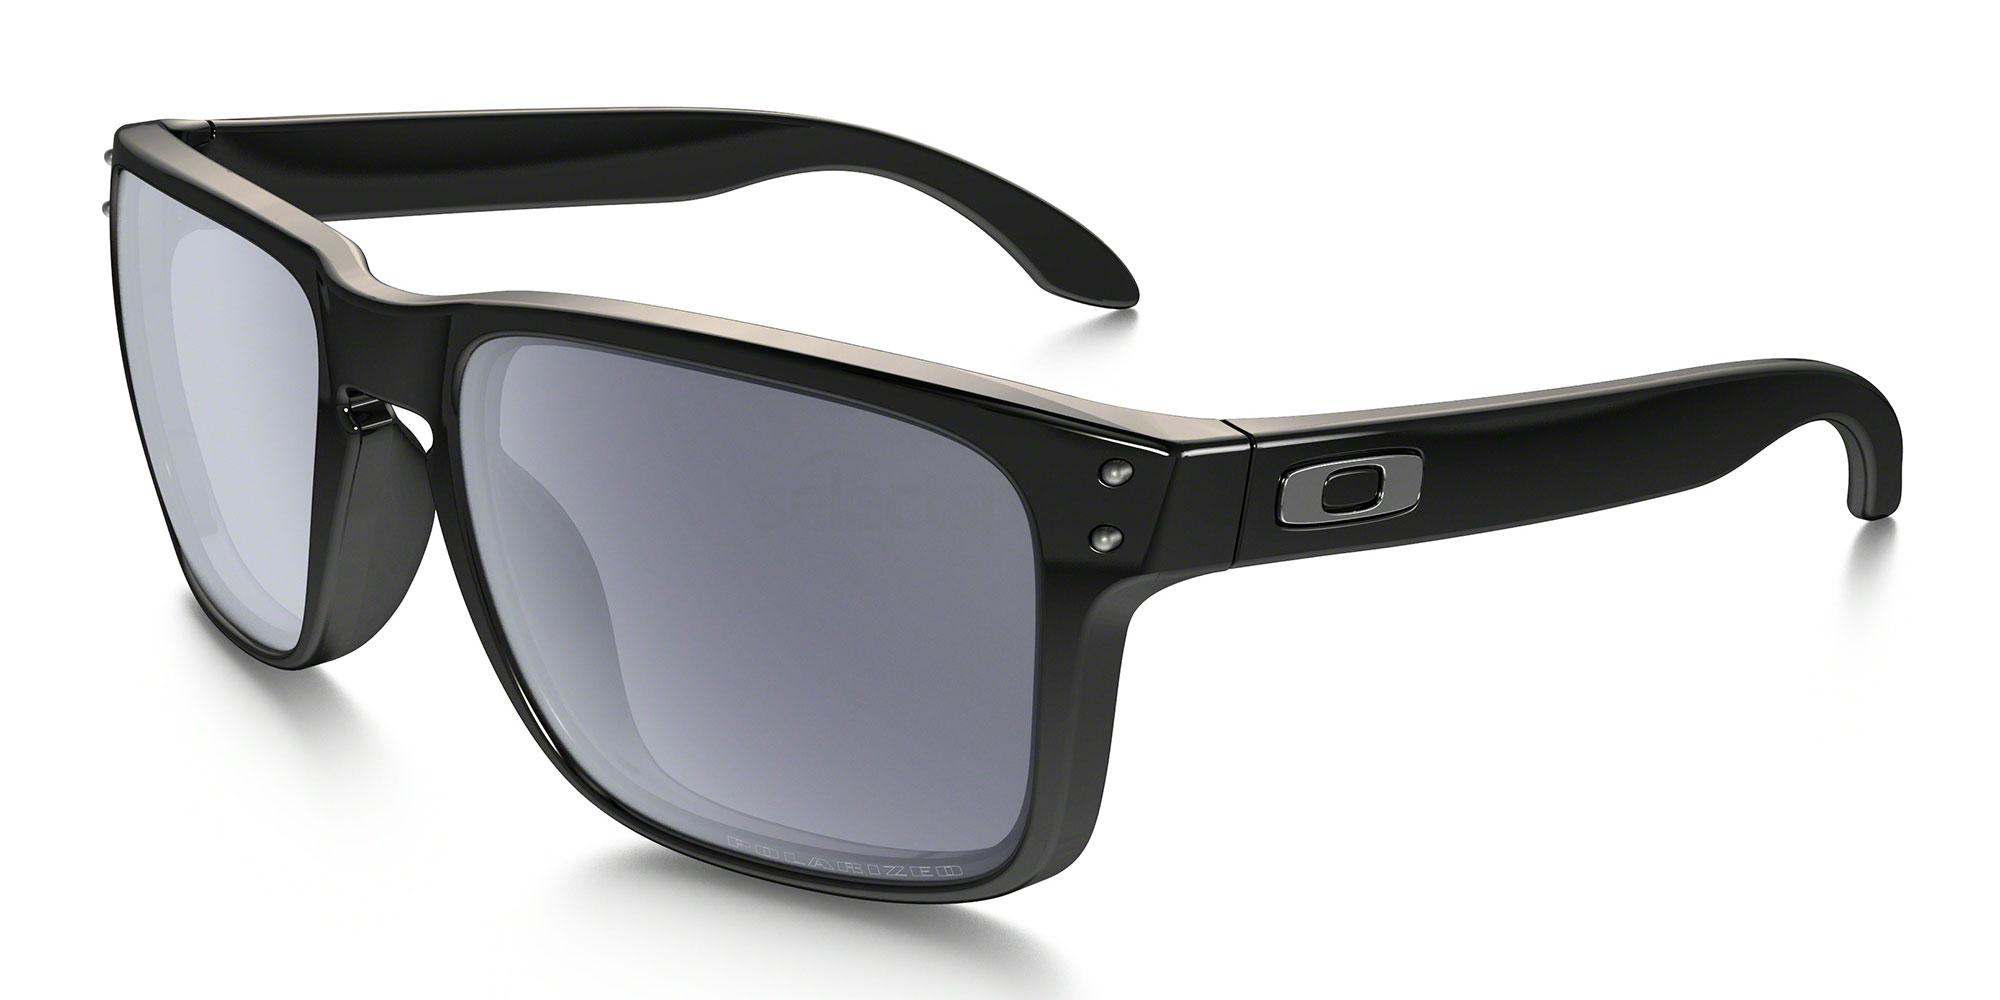 Oakley_OO9102_Holbrook_polarized_sunglasses